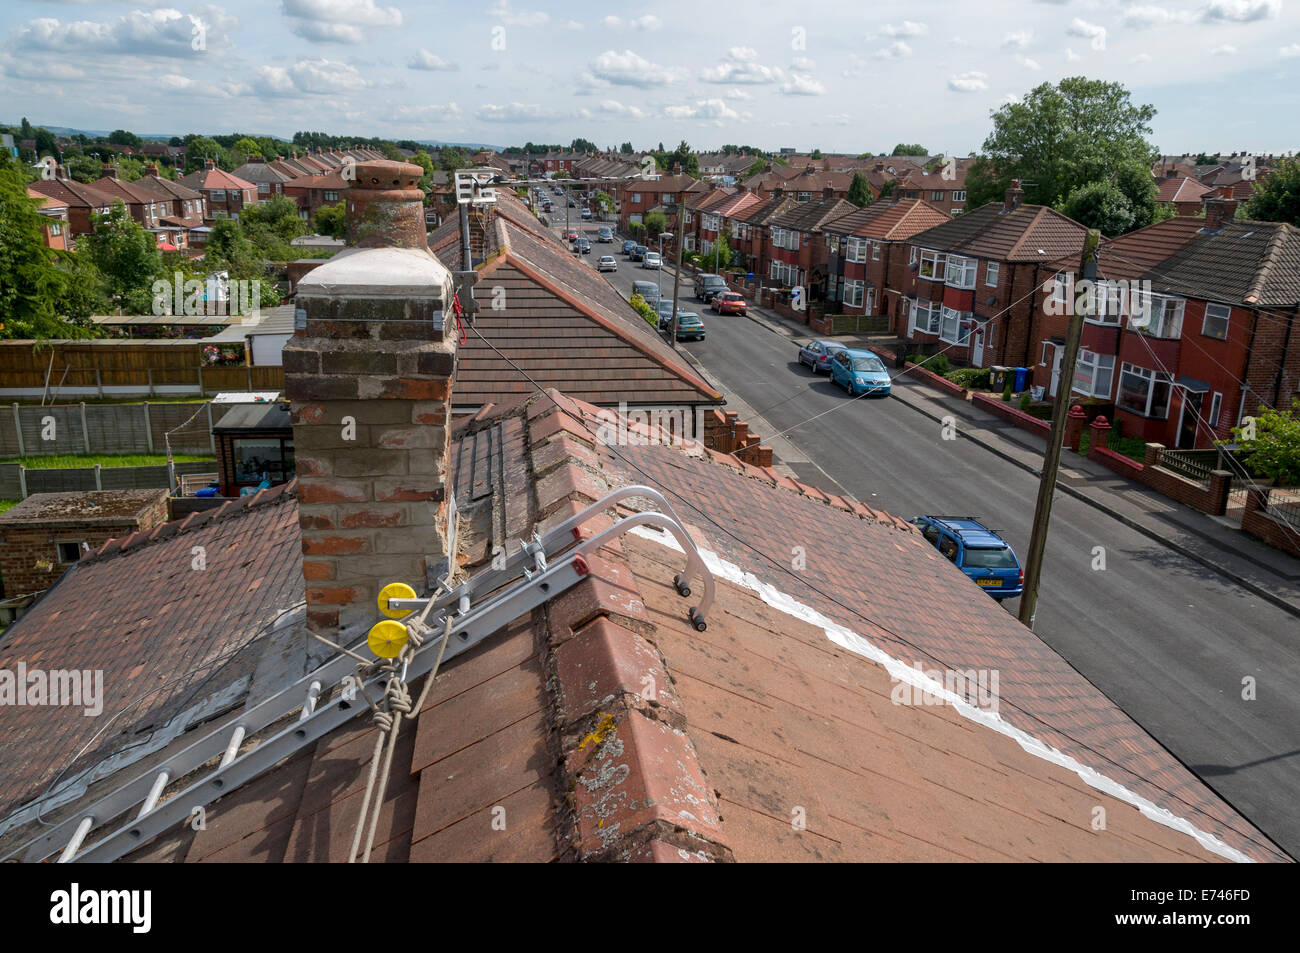 Chimney Ladder Stock Photos Chimney Ladder Stock Images